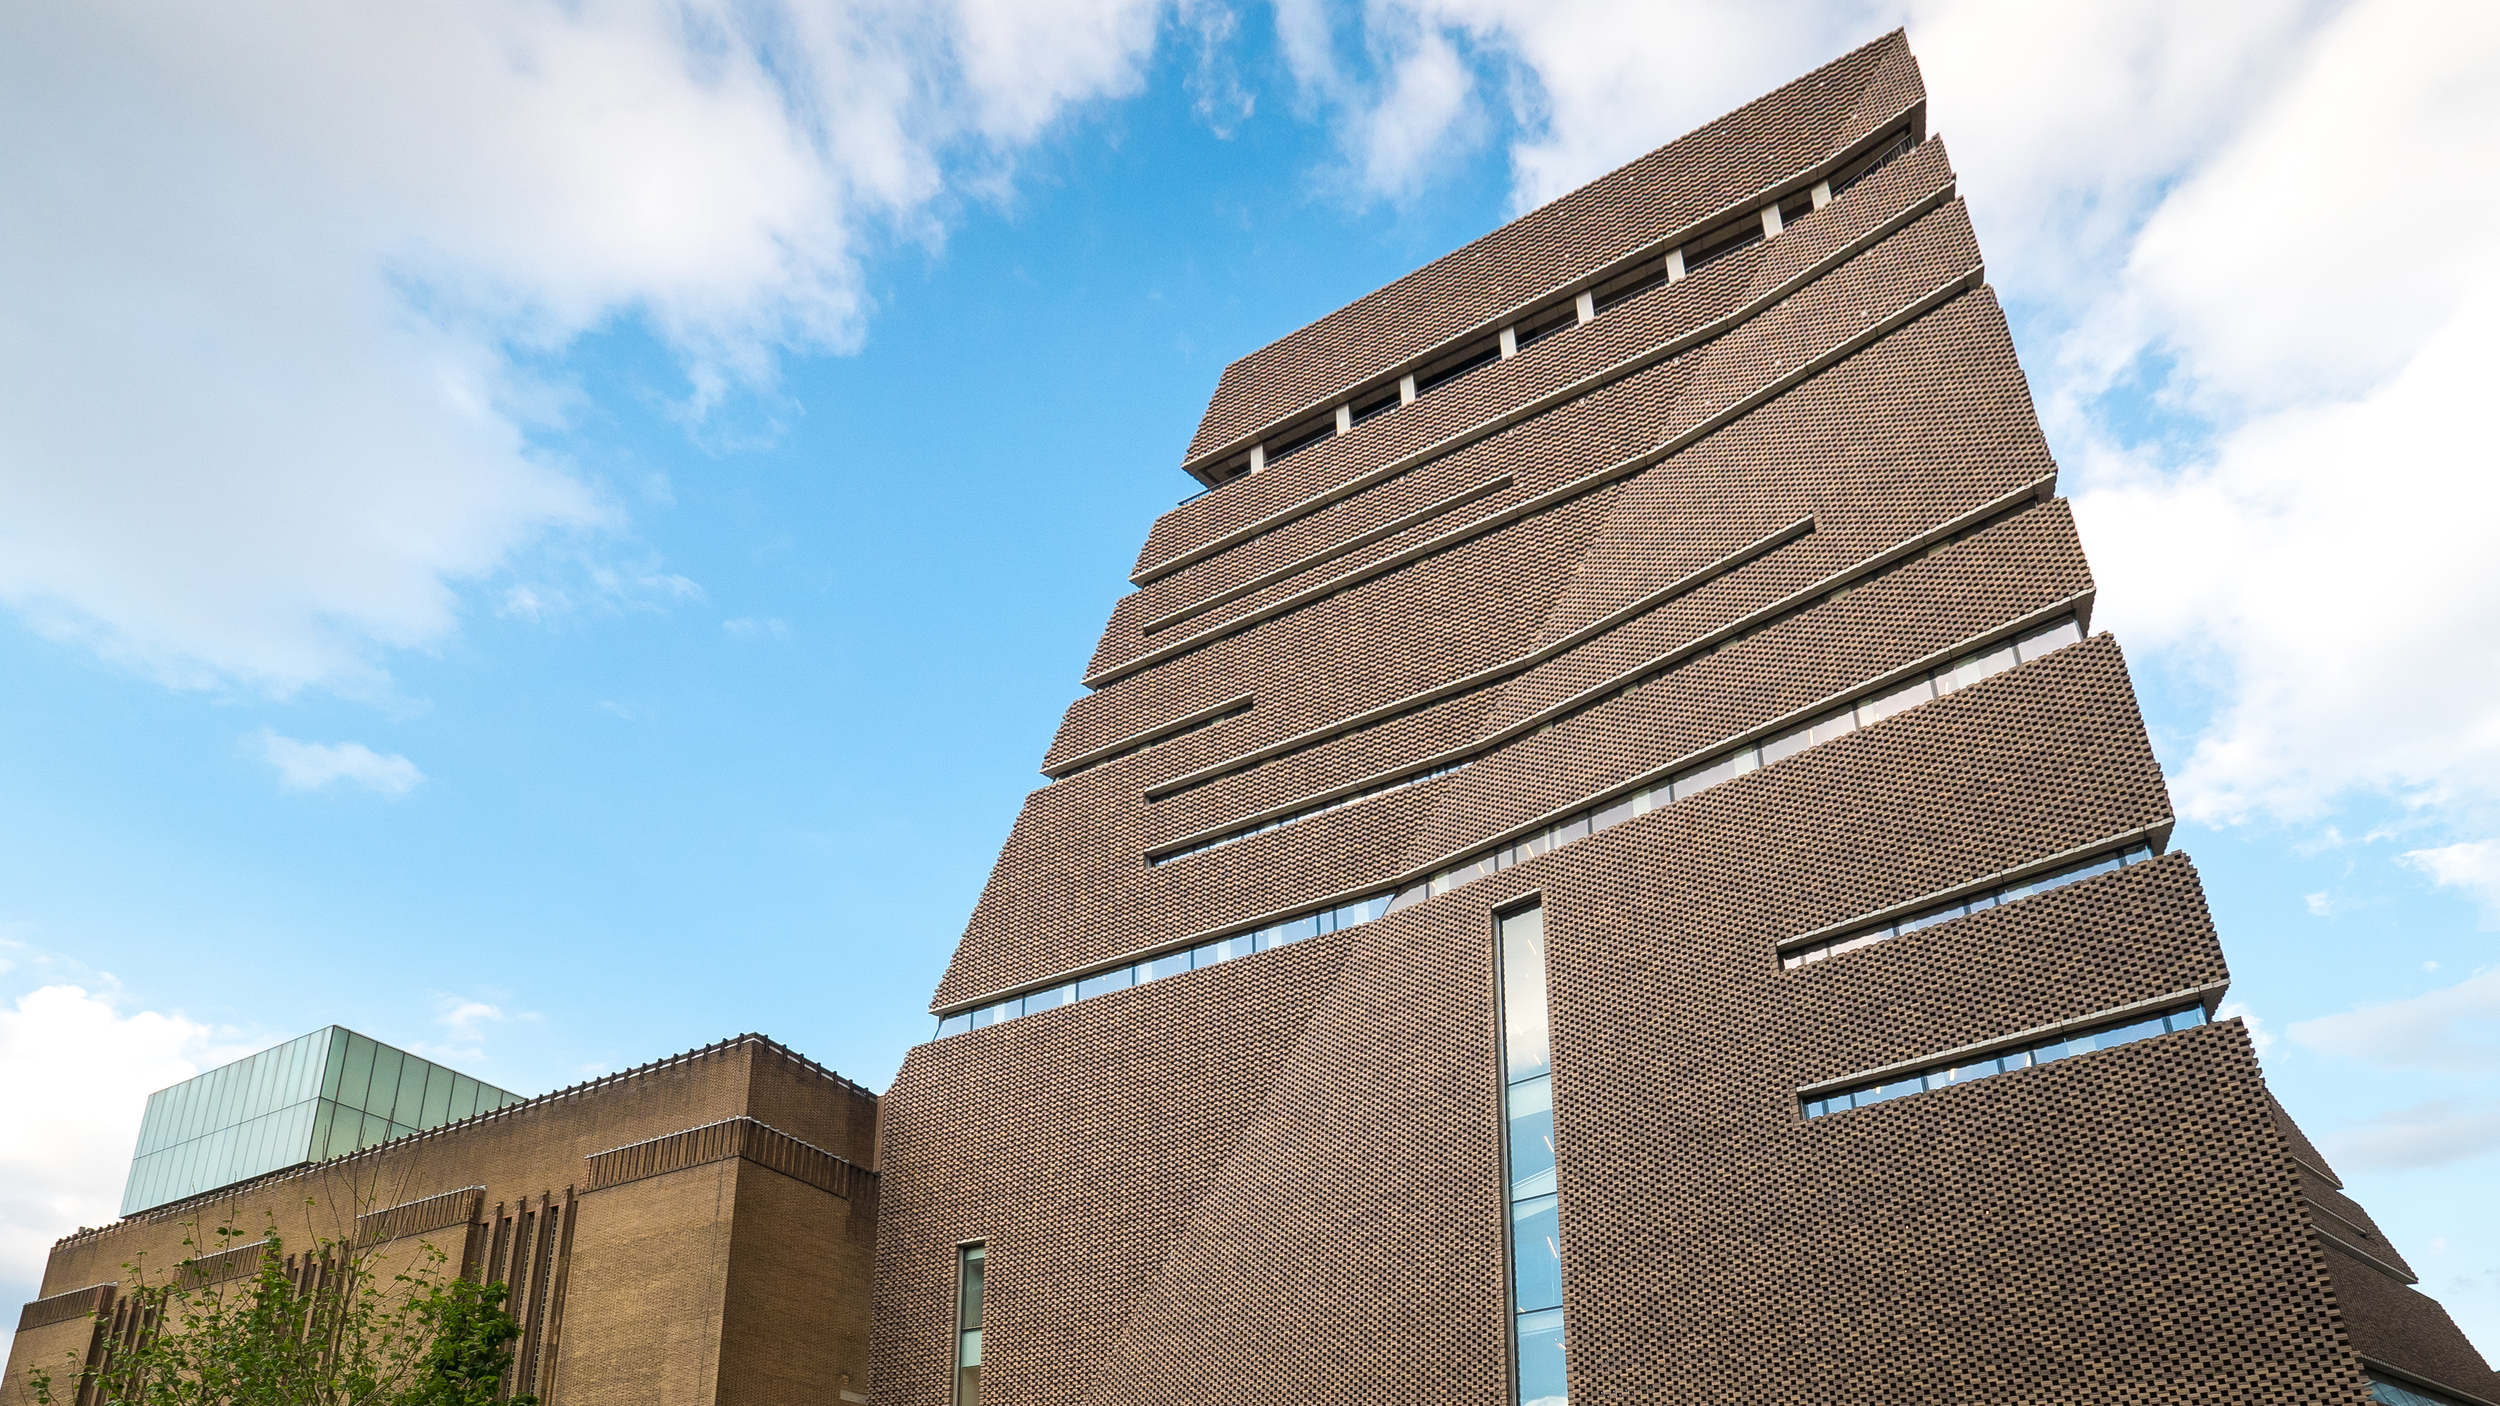 Tate Modern Switch House - Photography: Copyright © Alex Upton